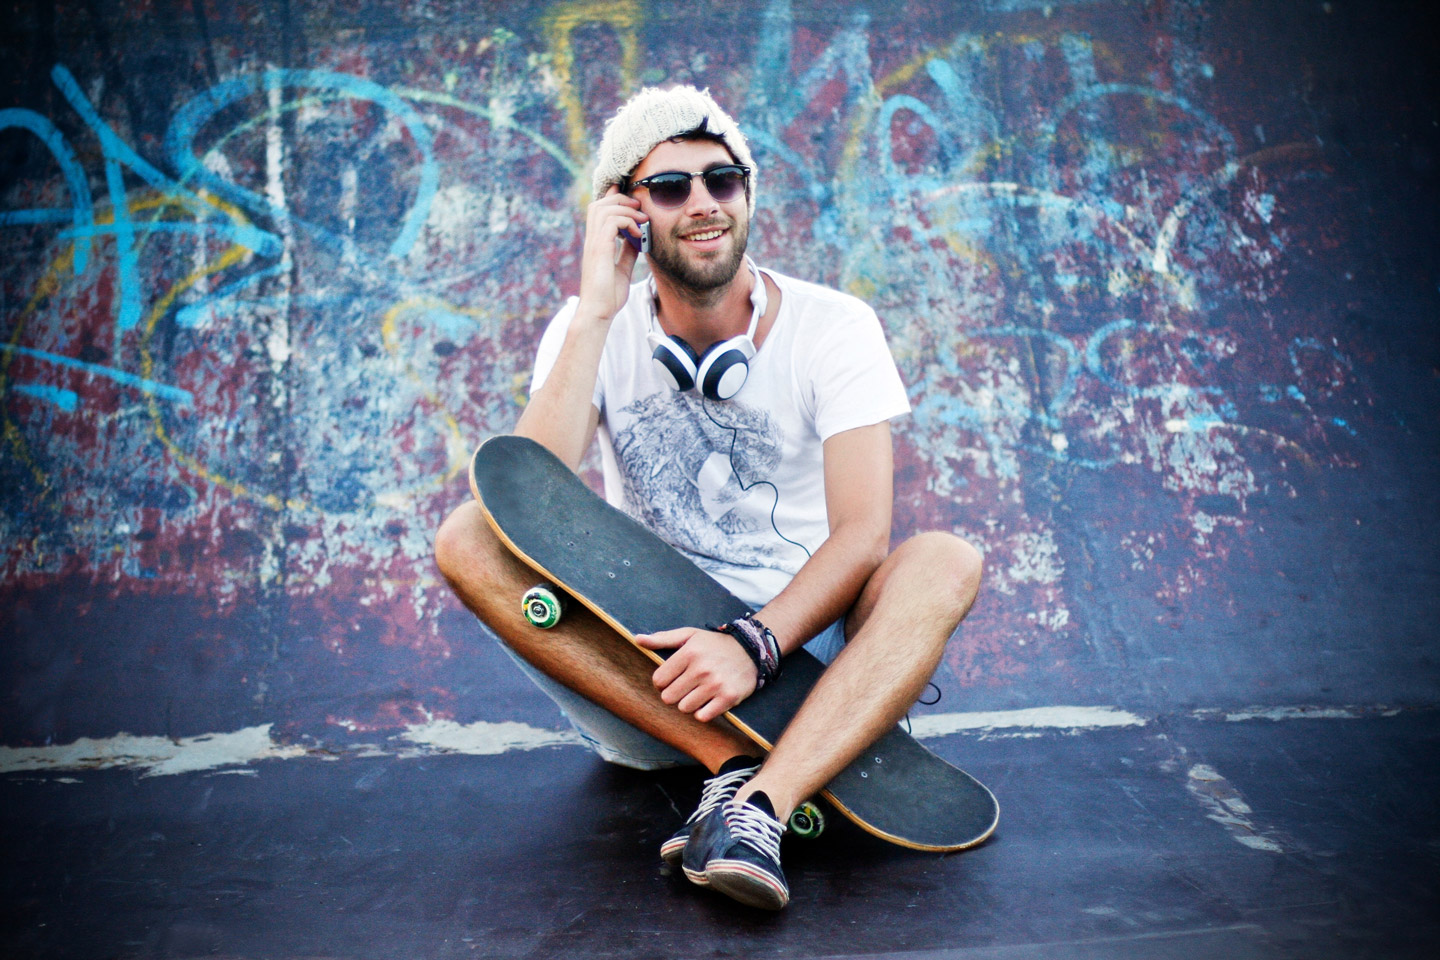 How to Achieve the Skater Style With Ease